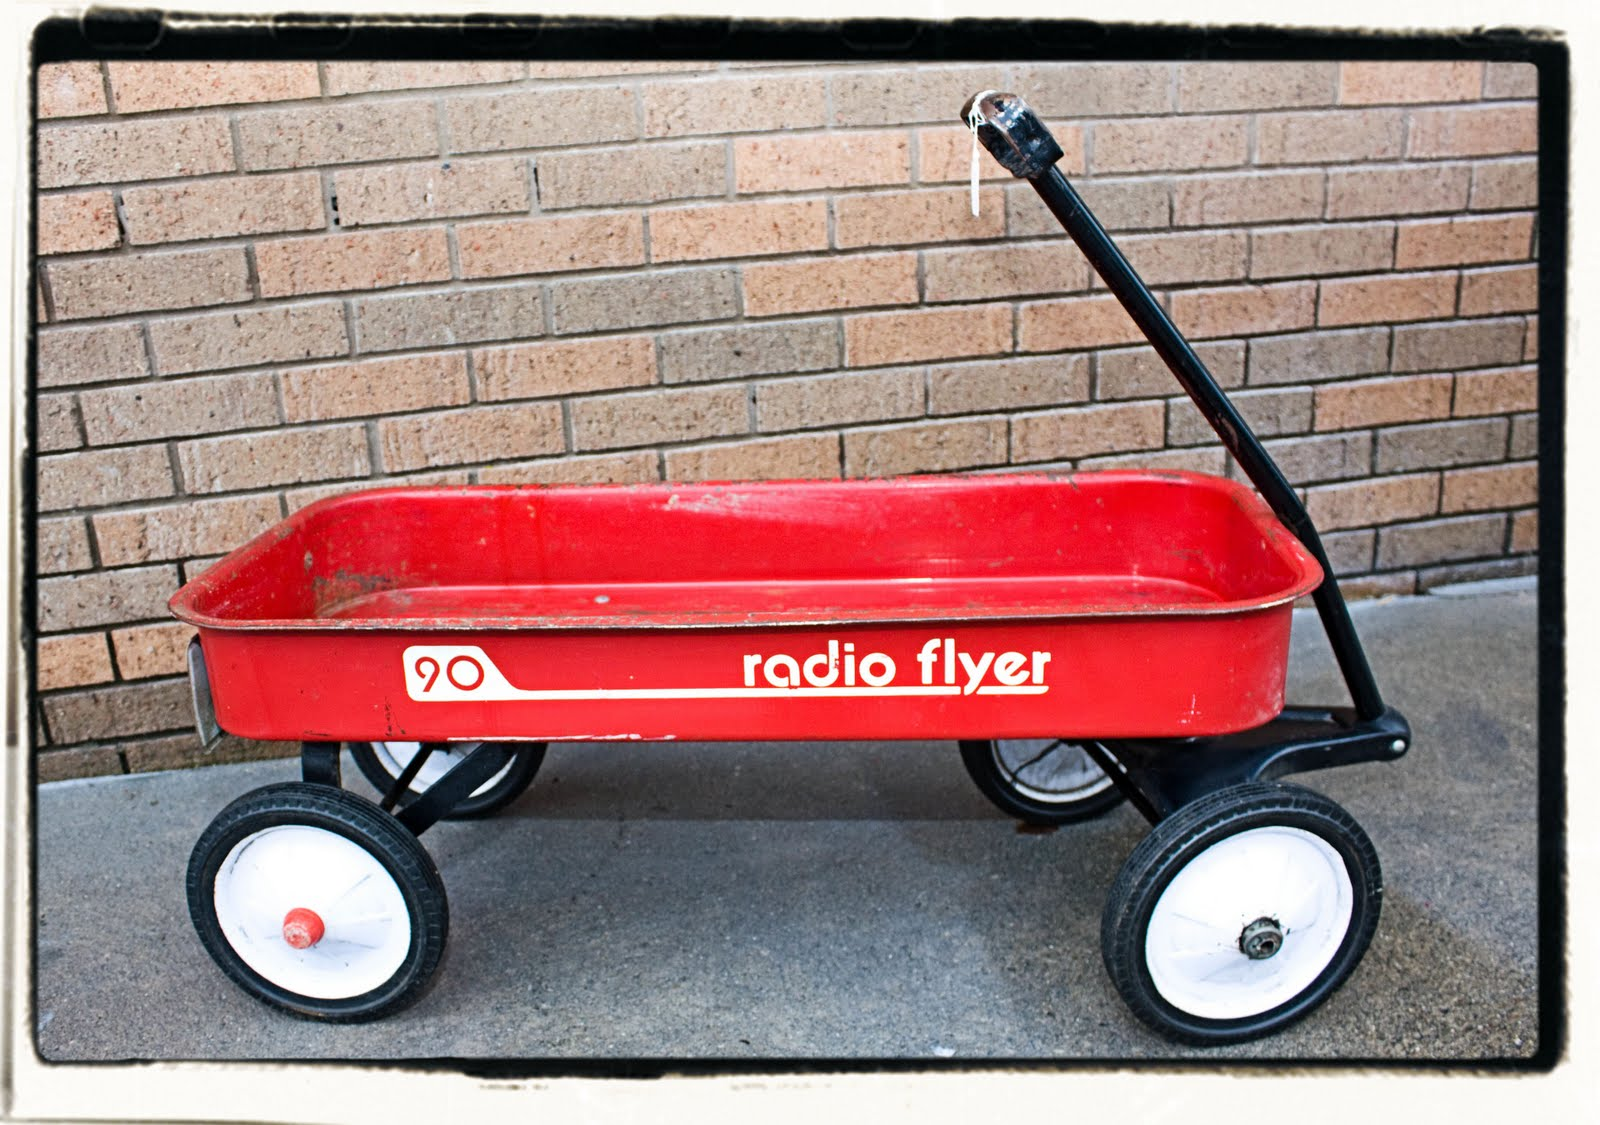 dating radio flyer wagon To date, the following toys have been inducted into the national toy hall of fame radio flyer wagon inducted 1999 raggedy ann and andy inducted 2002.